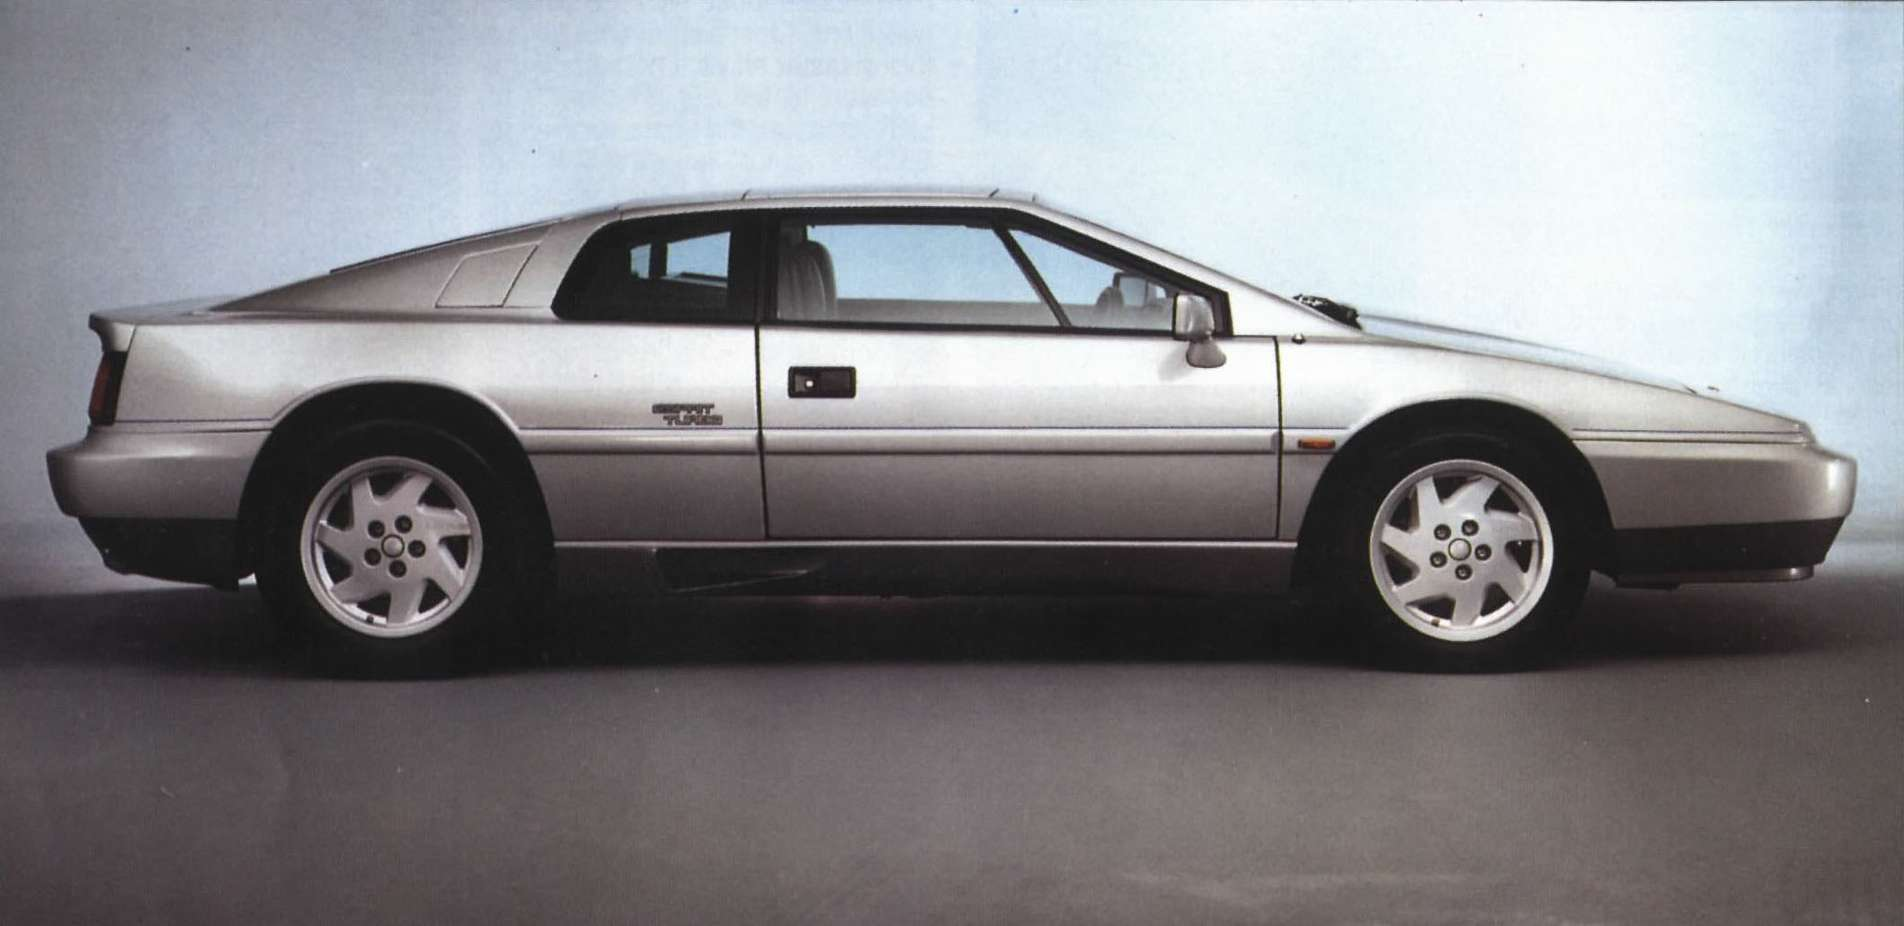 Lotus Esprit Turbo #7428440